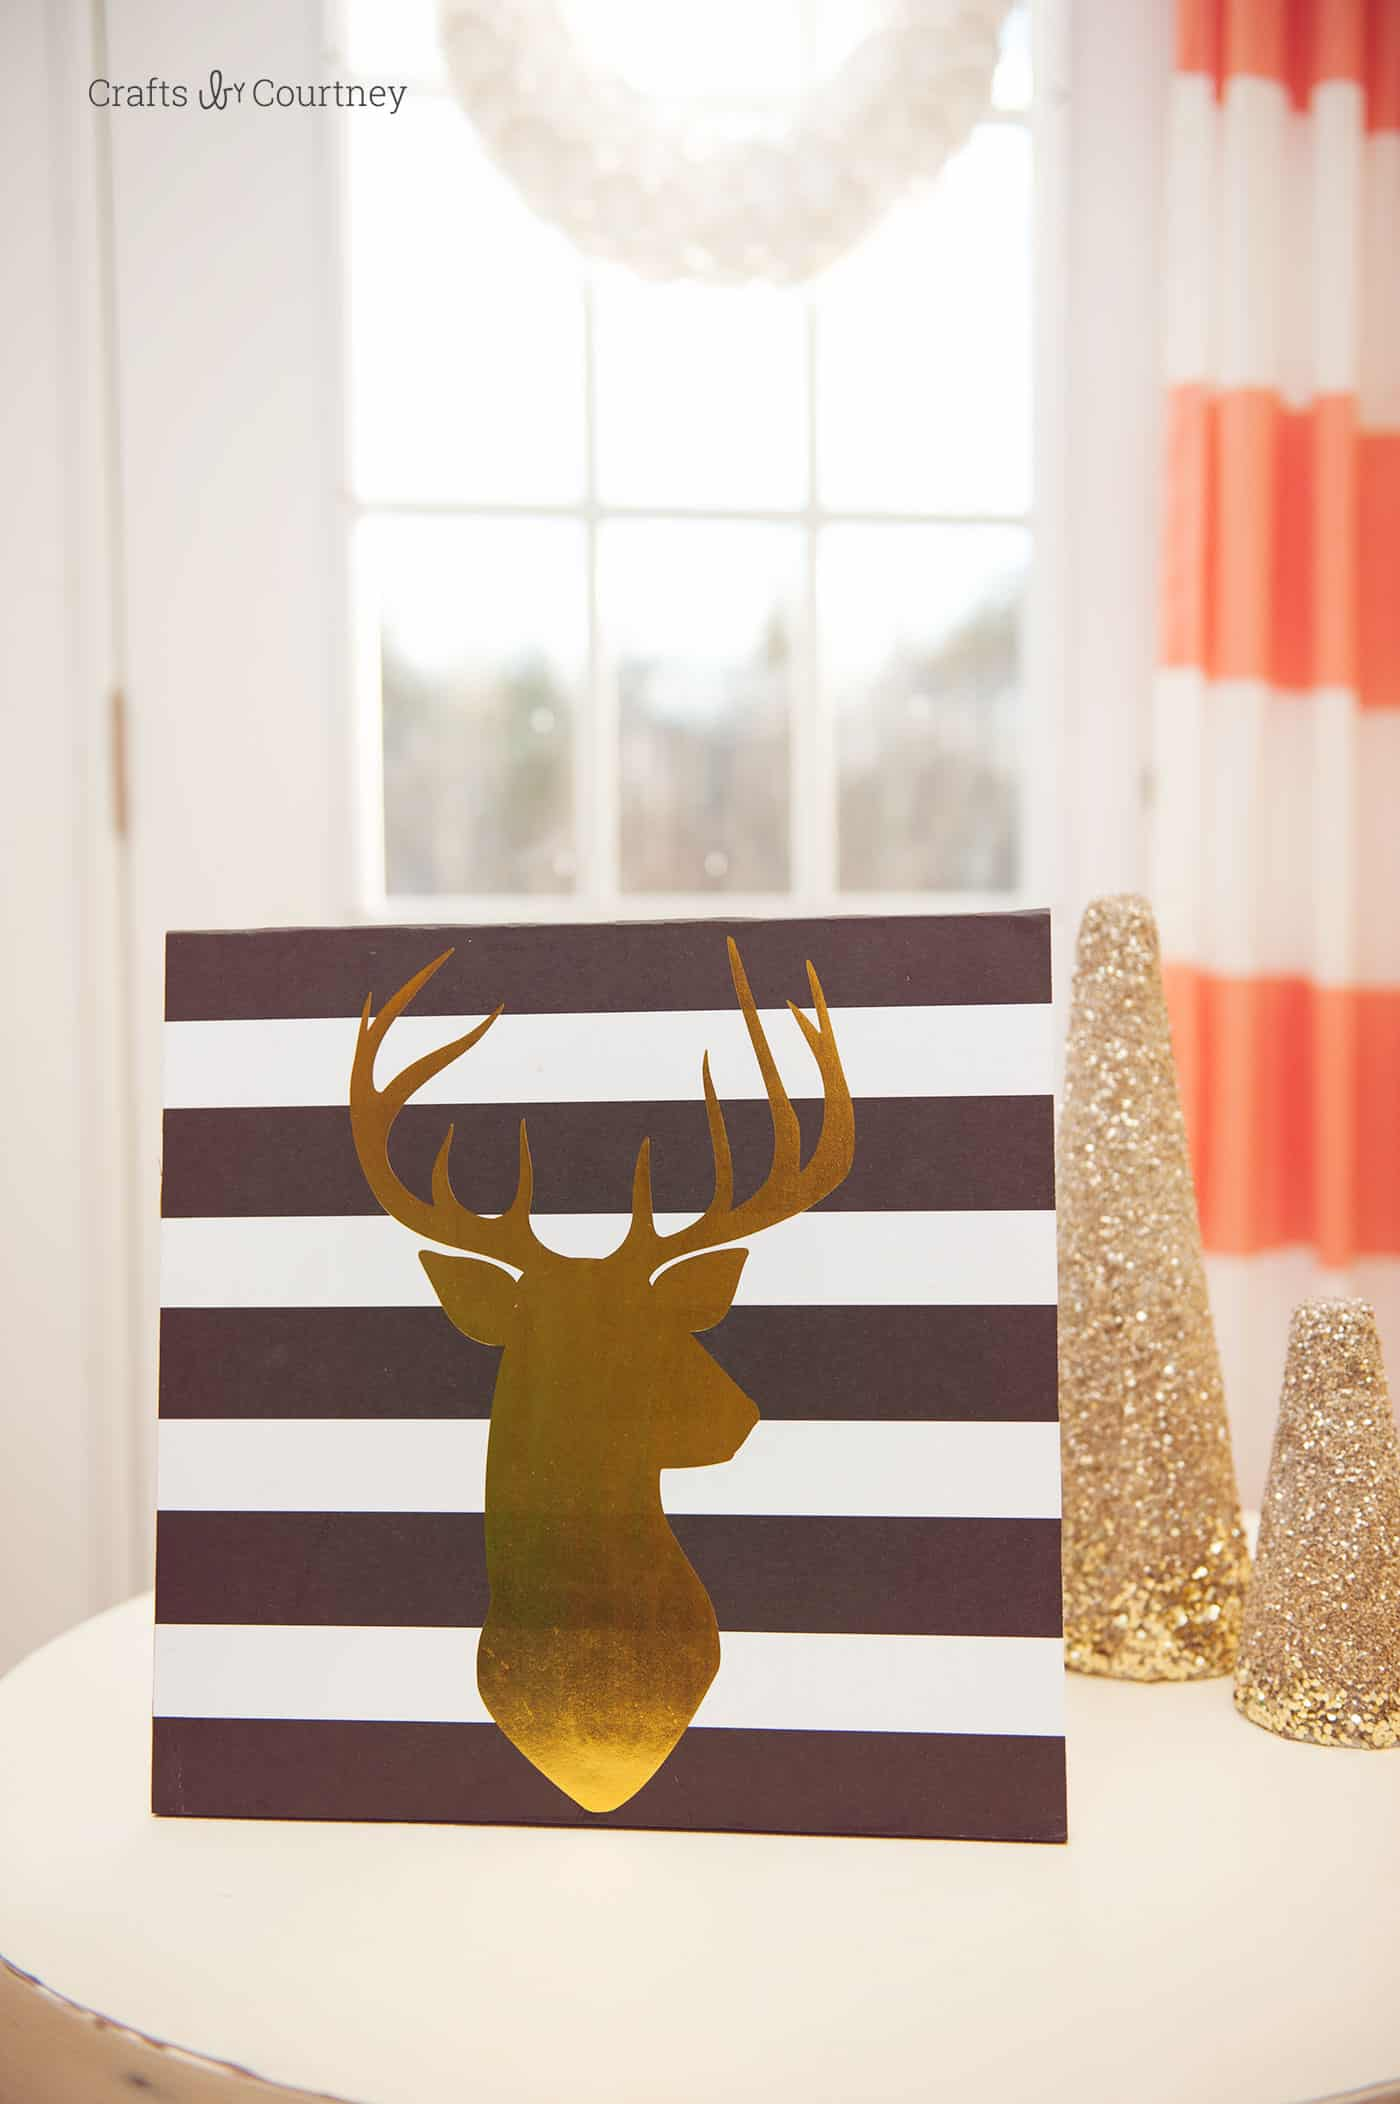 Simple Use cool scrapbook paper and cut pieces of wood to make fabulous DIY wall art in